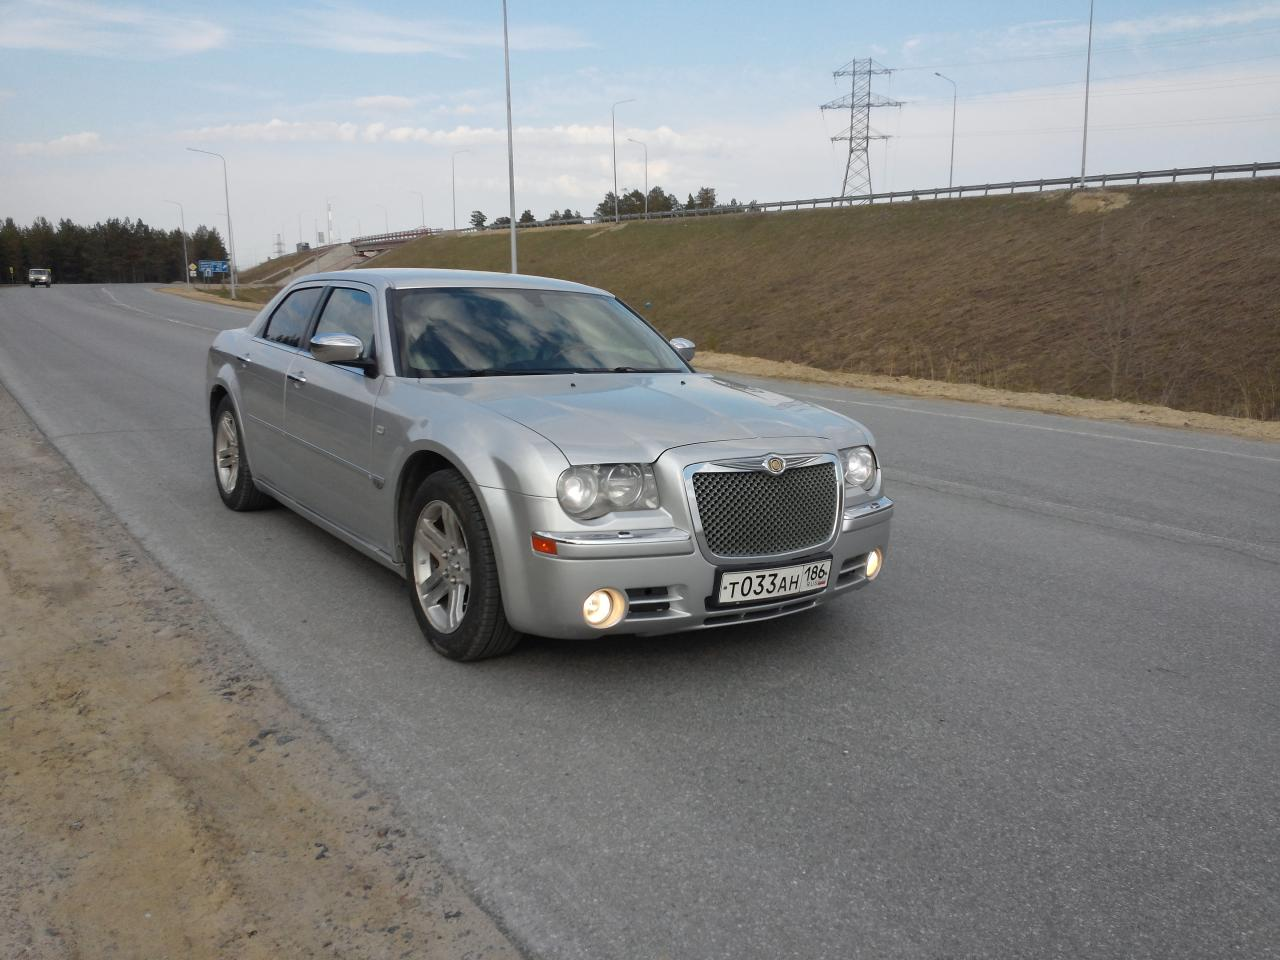 Седан Chrysler 300C - фото 1